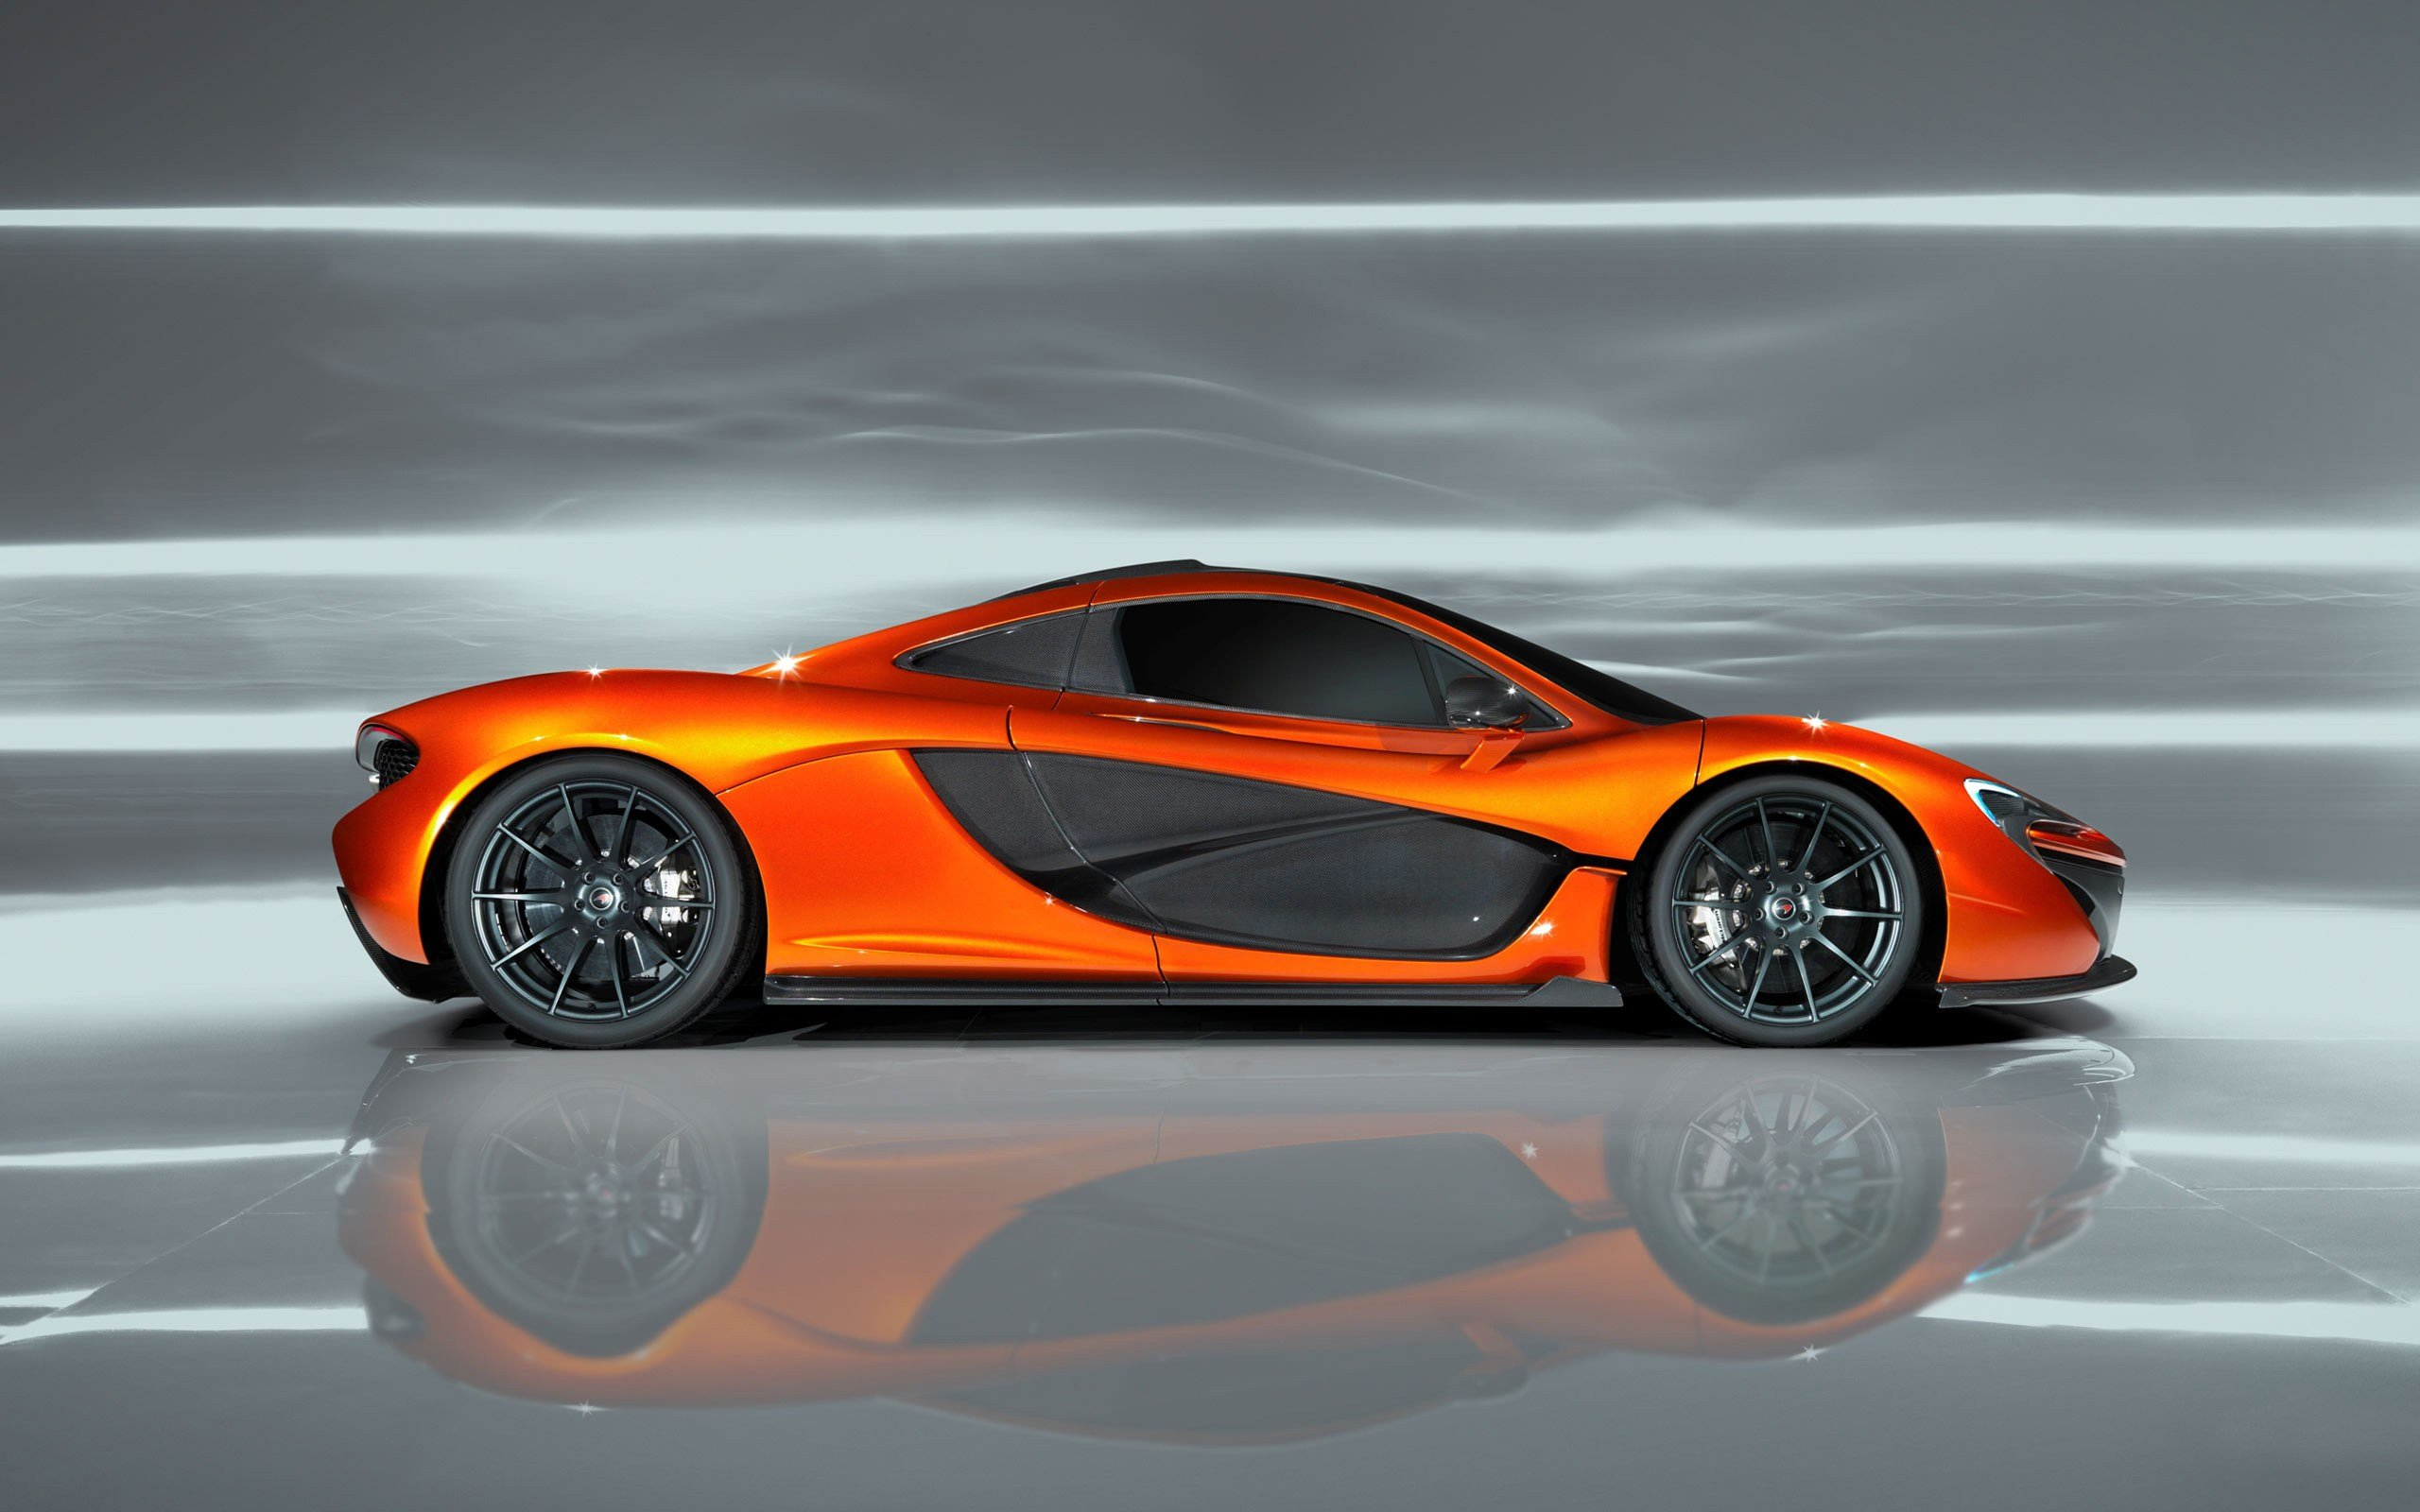 New 2012 Mclaren P1 Concept 2 Wallpaper Hd Car Wallpapers On This Month